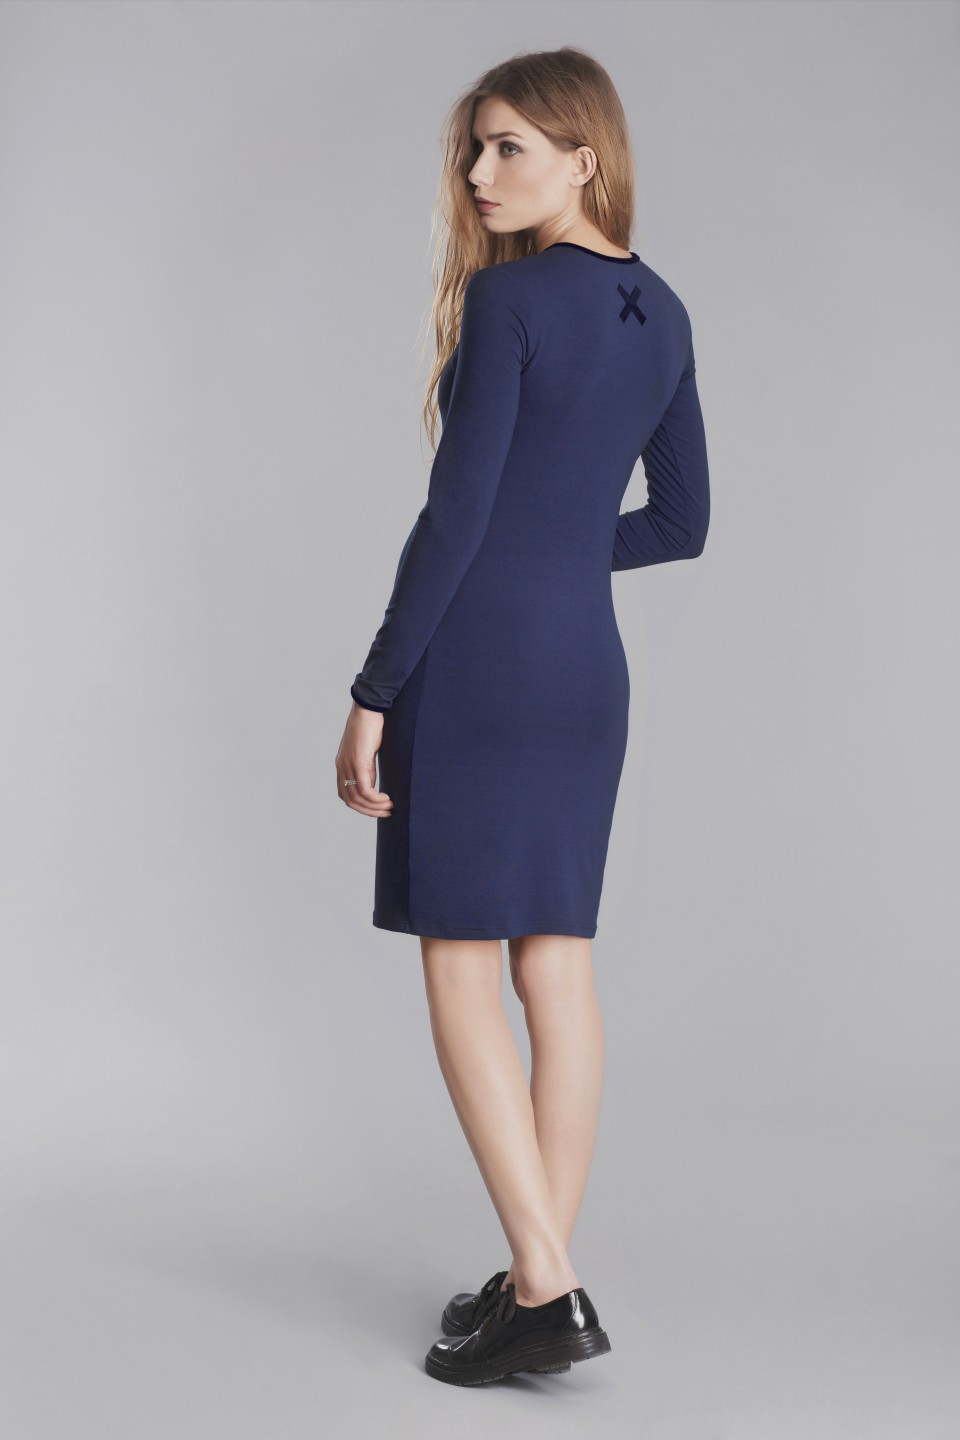 Navy bodycon dress with X application